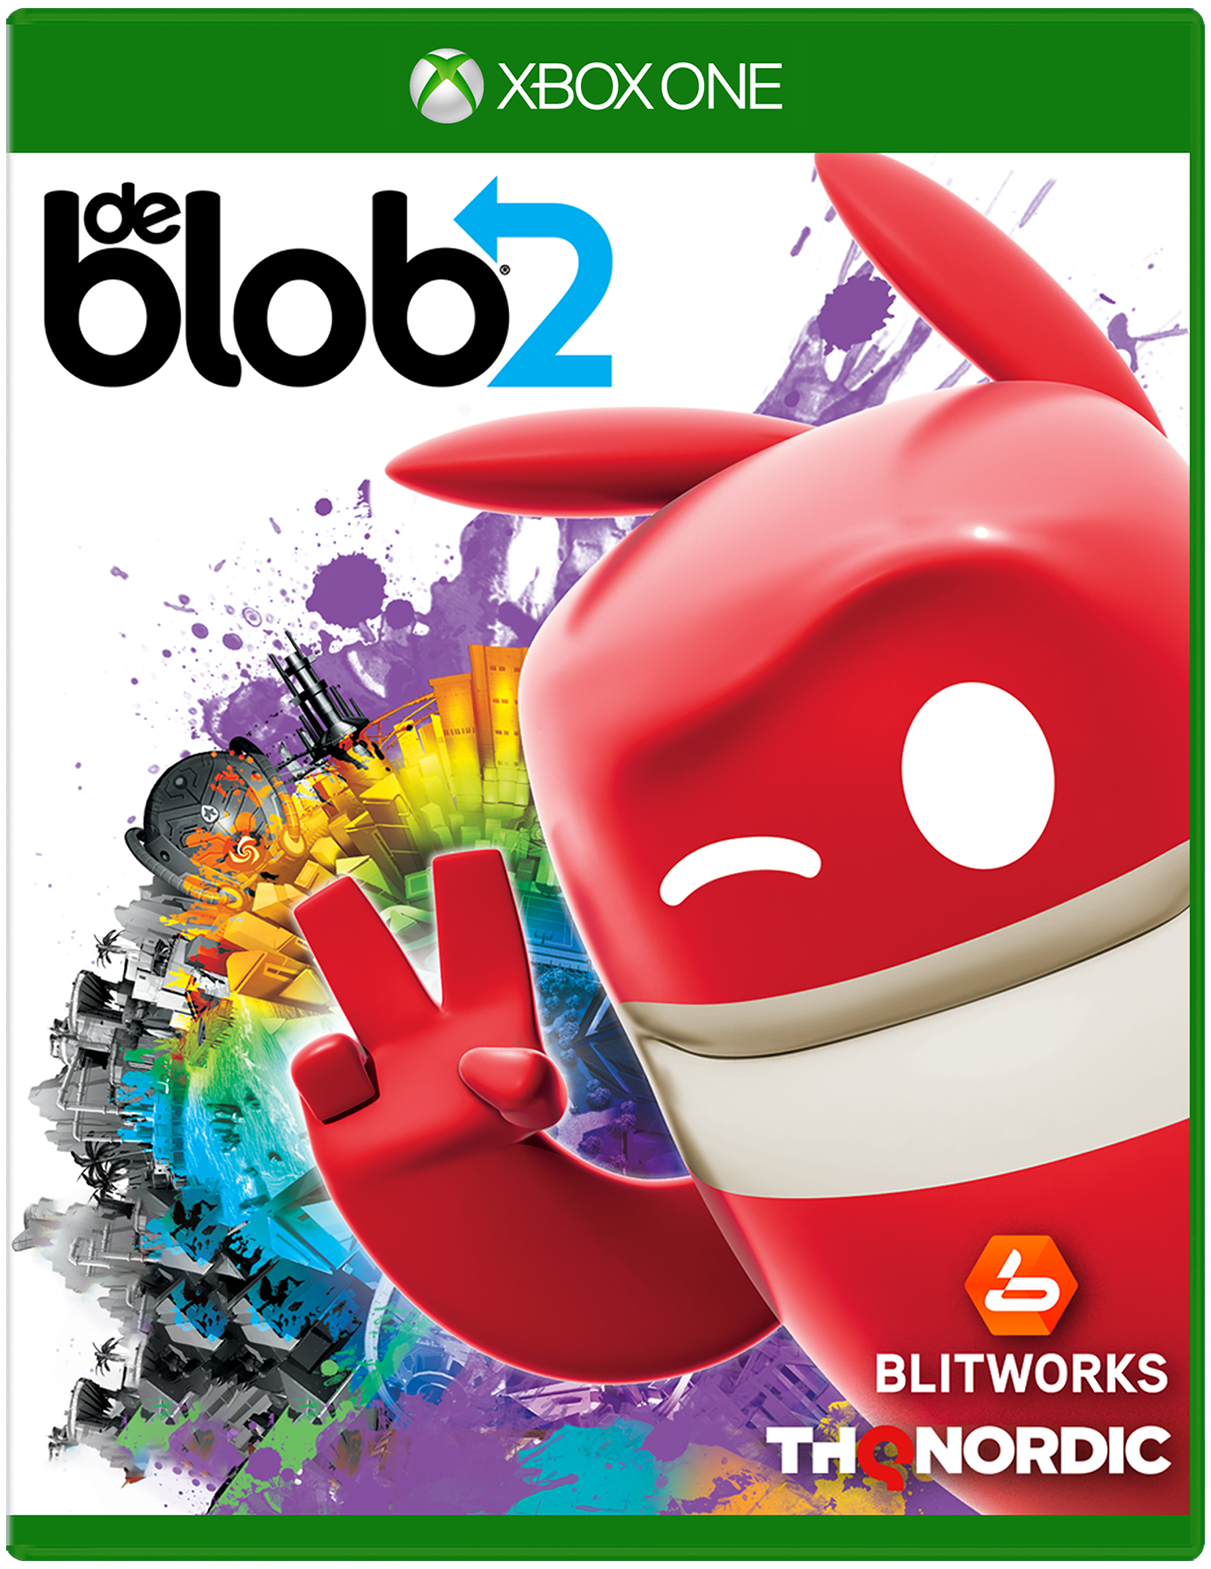 De Blob 2 game for Xbox One